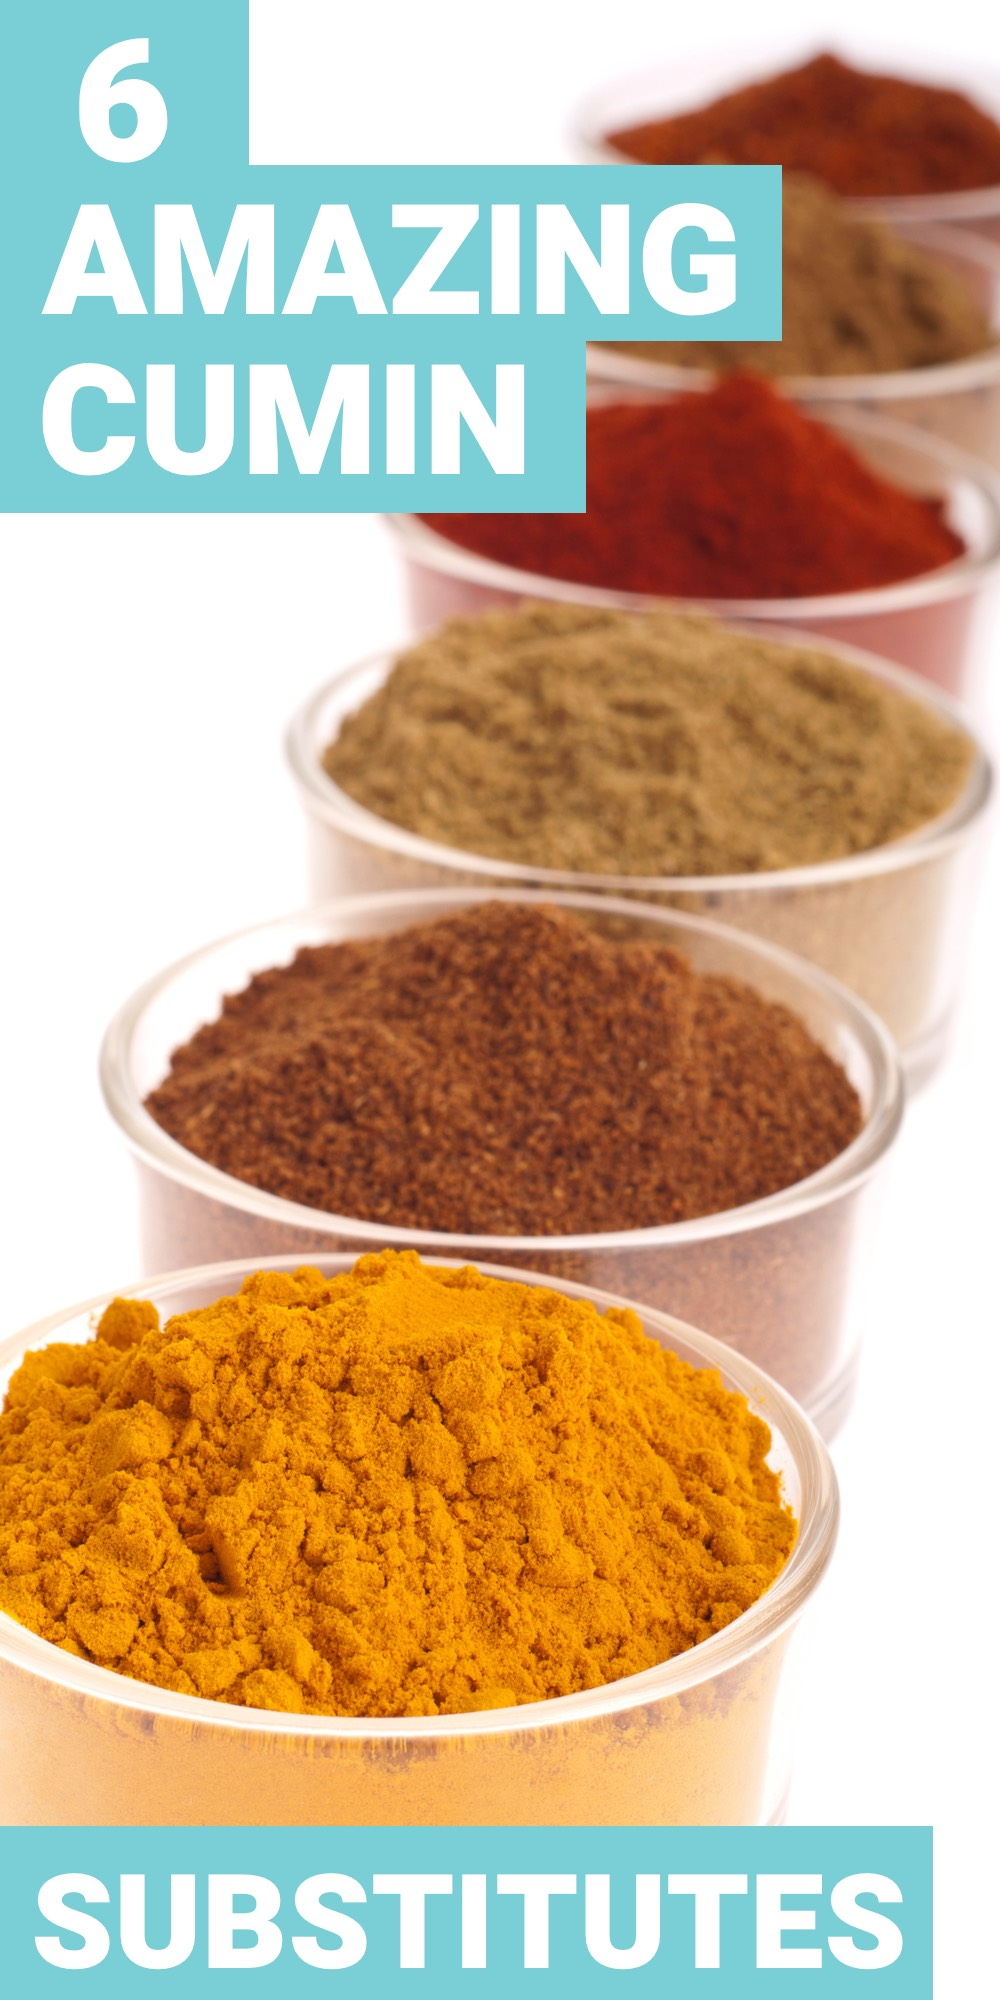 There is almost always a substitute for anything when it comes to the kitchen and food. The same holds true for spices. Here are 6 cumin substitutes for when you need one.